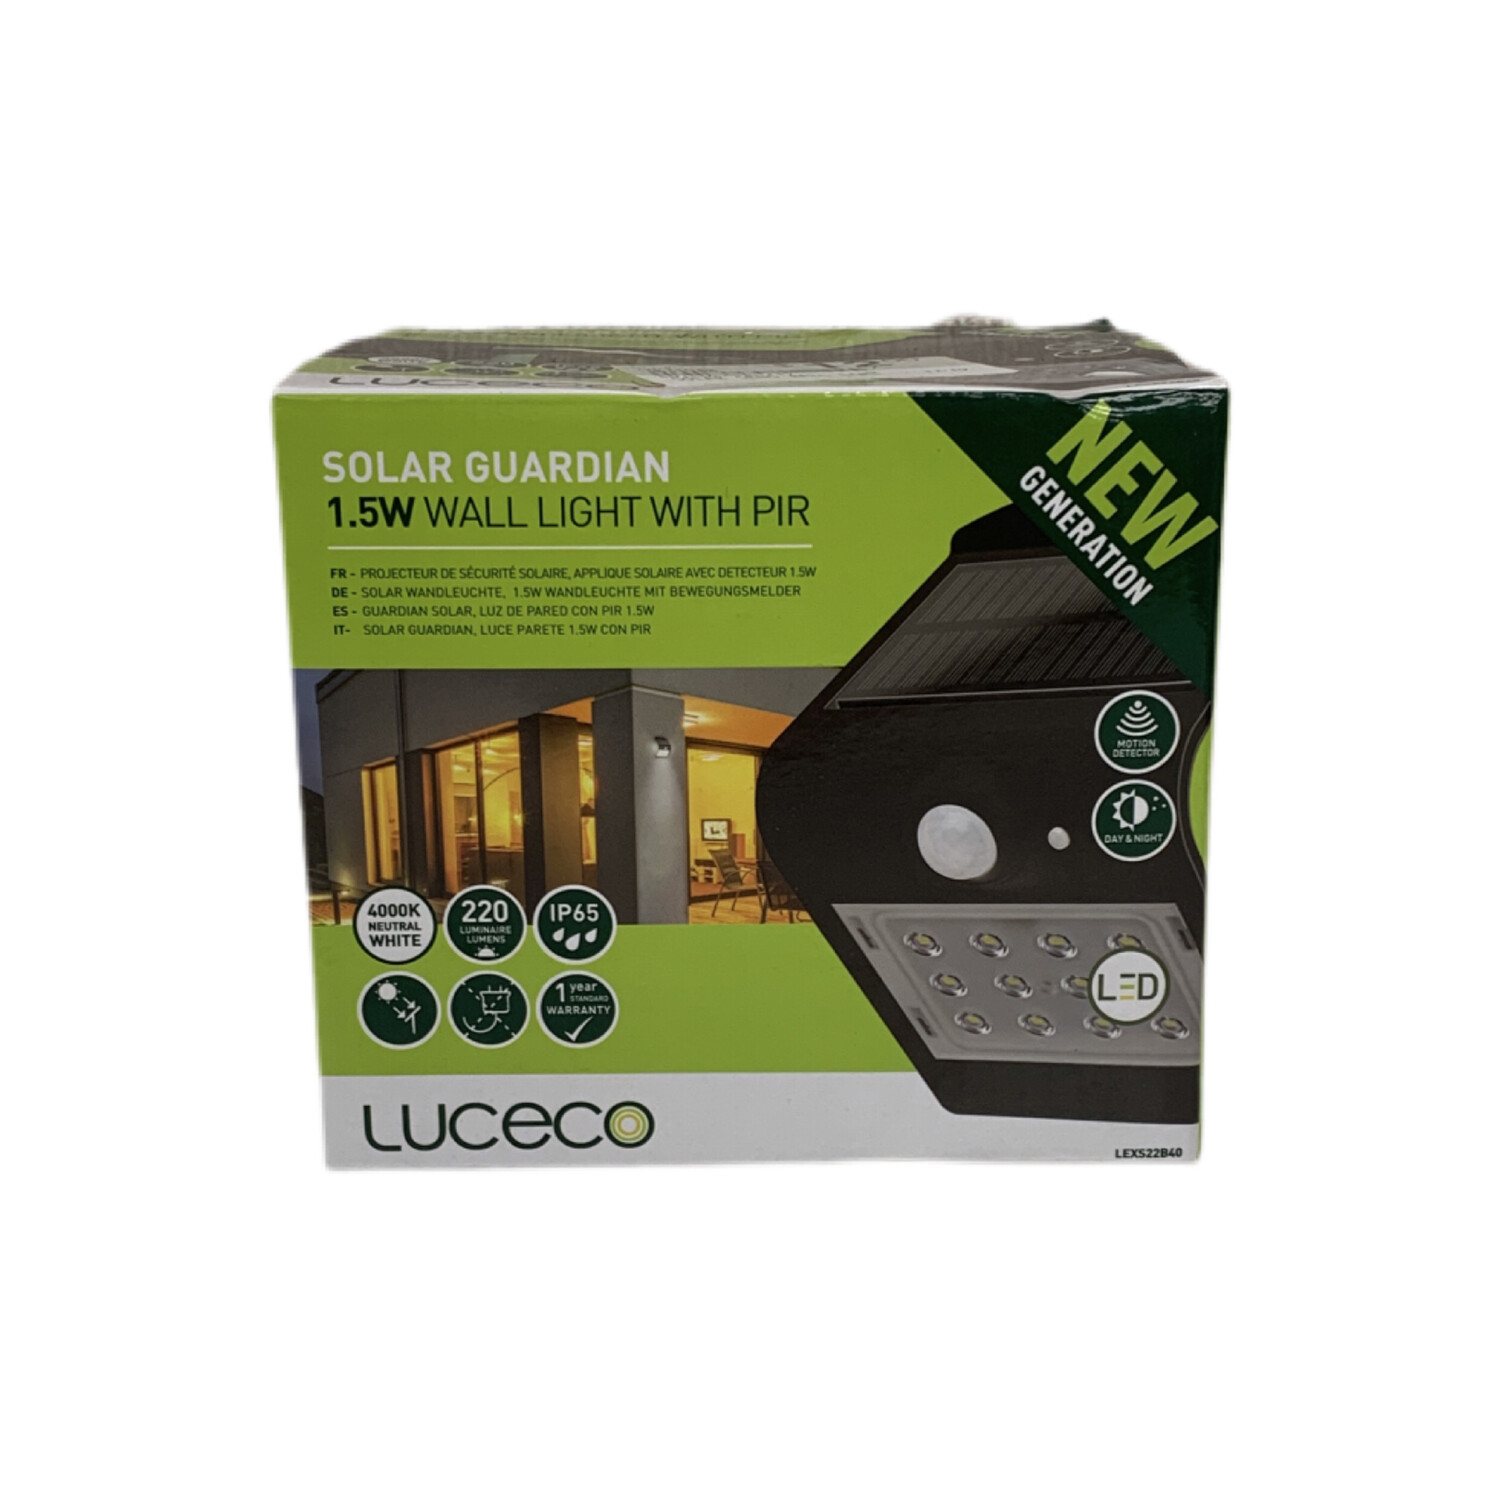 Luceco Solar Guardian Wall Light